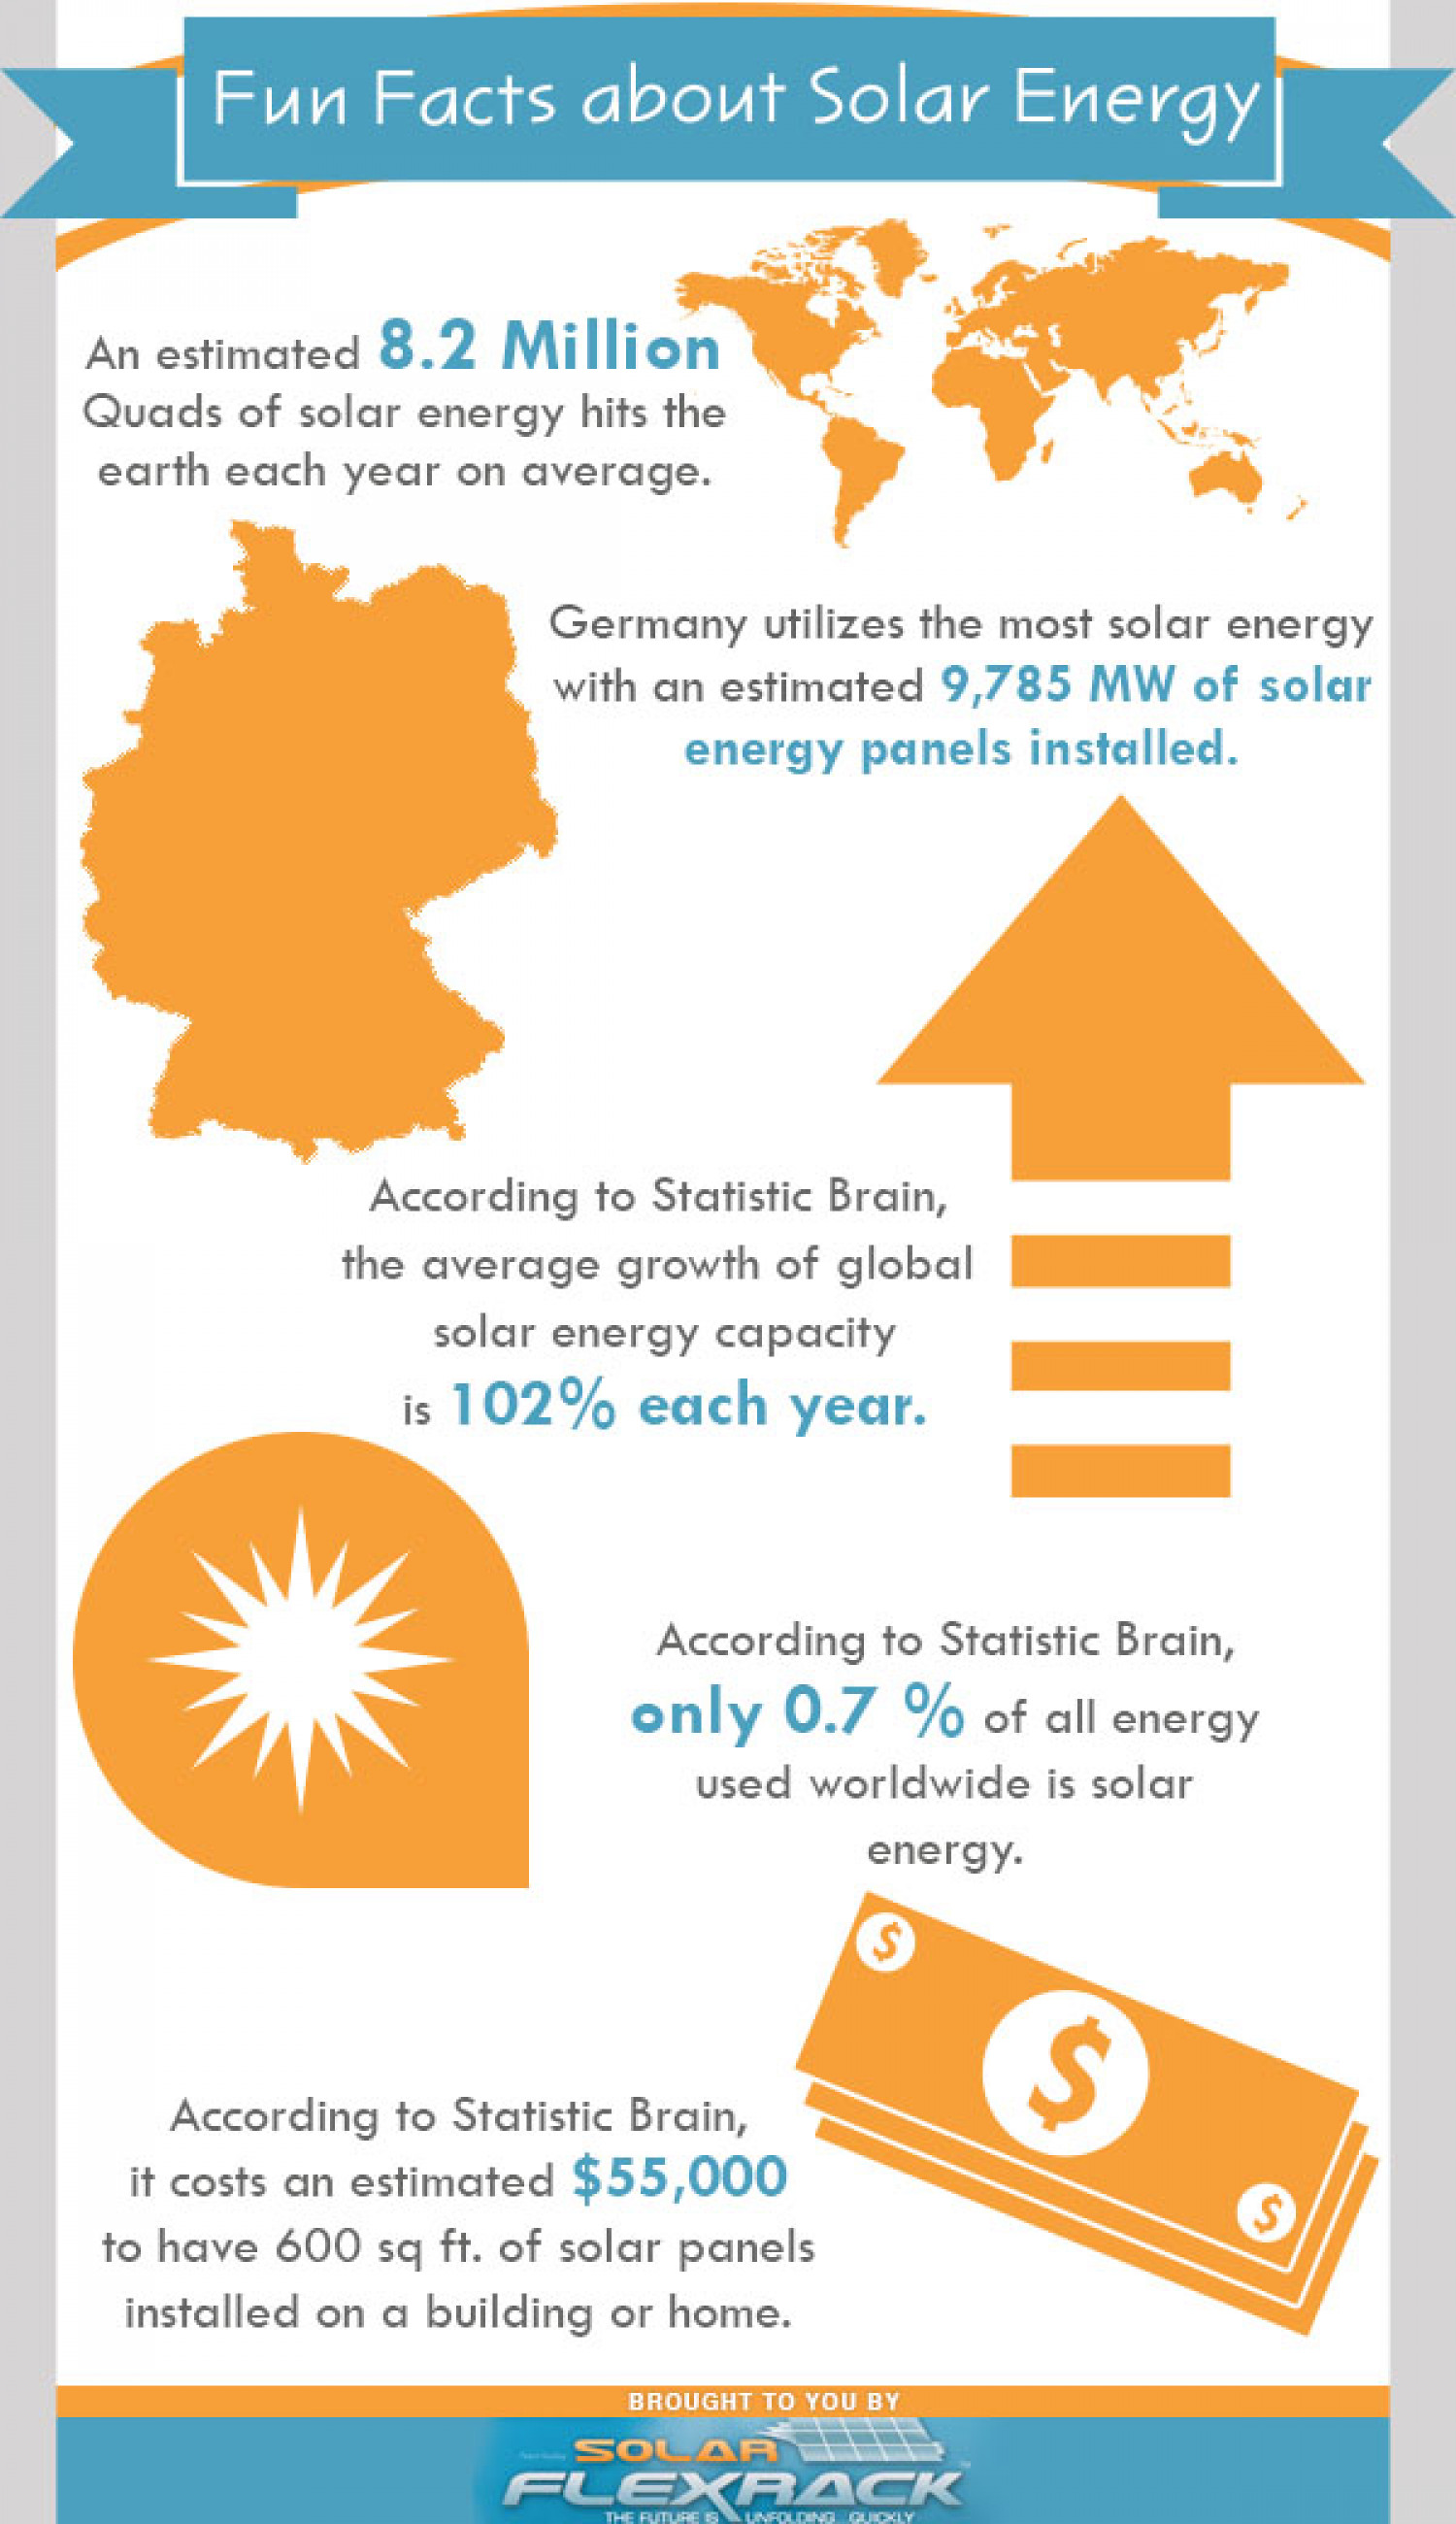 Fun Facts About Solar Energy